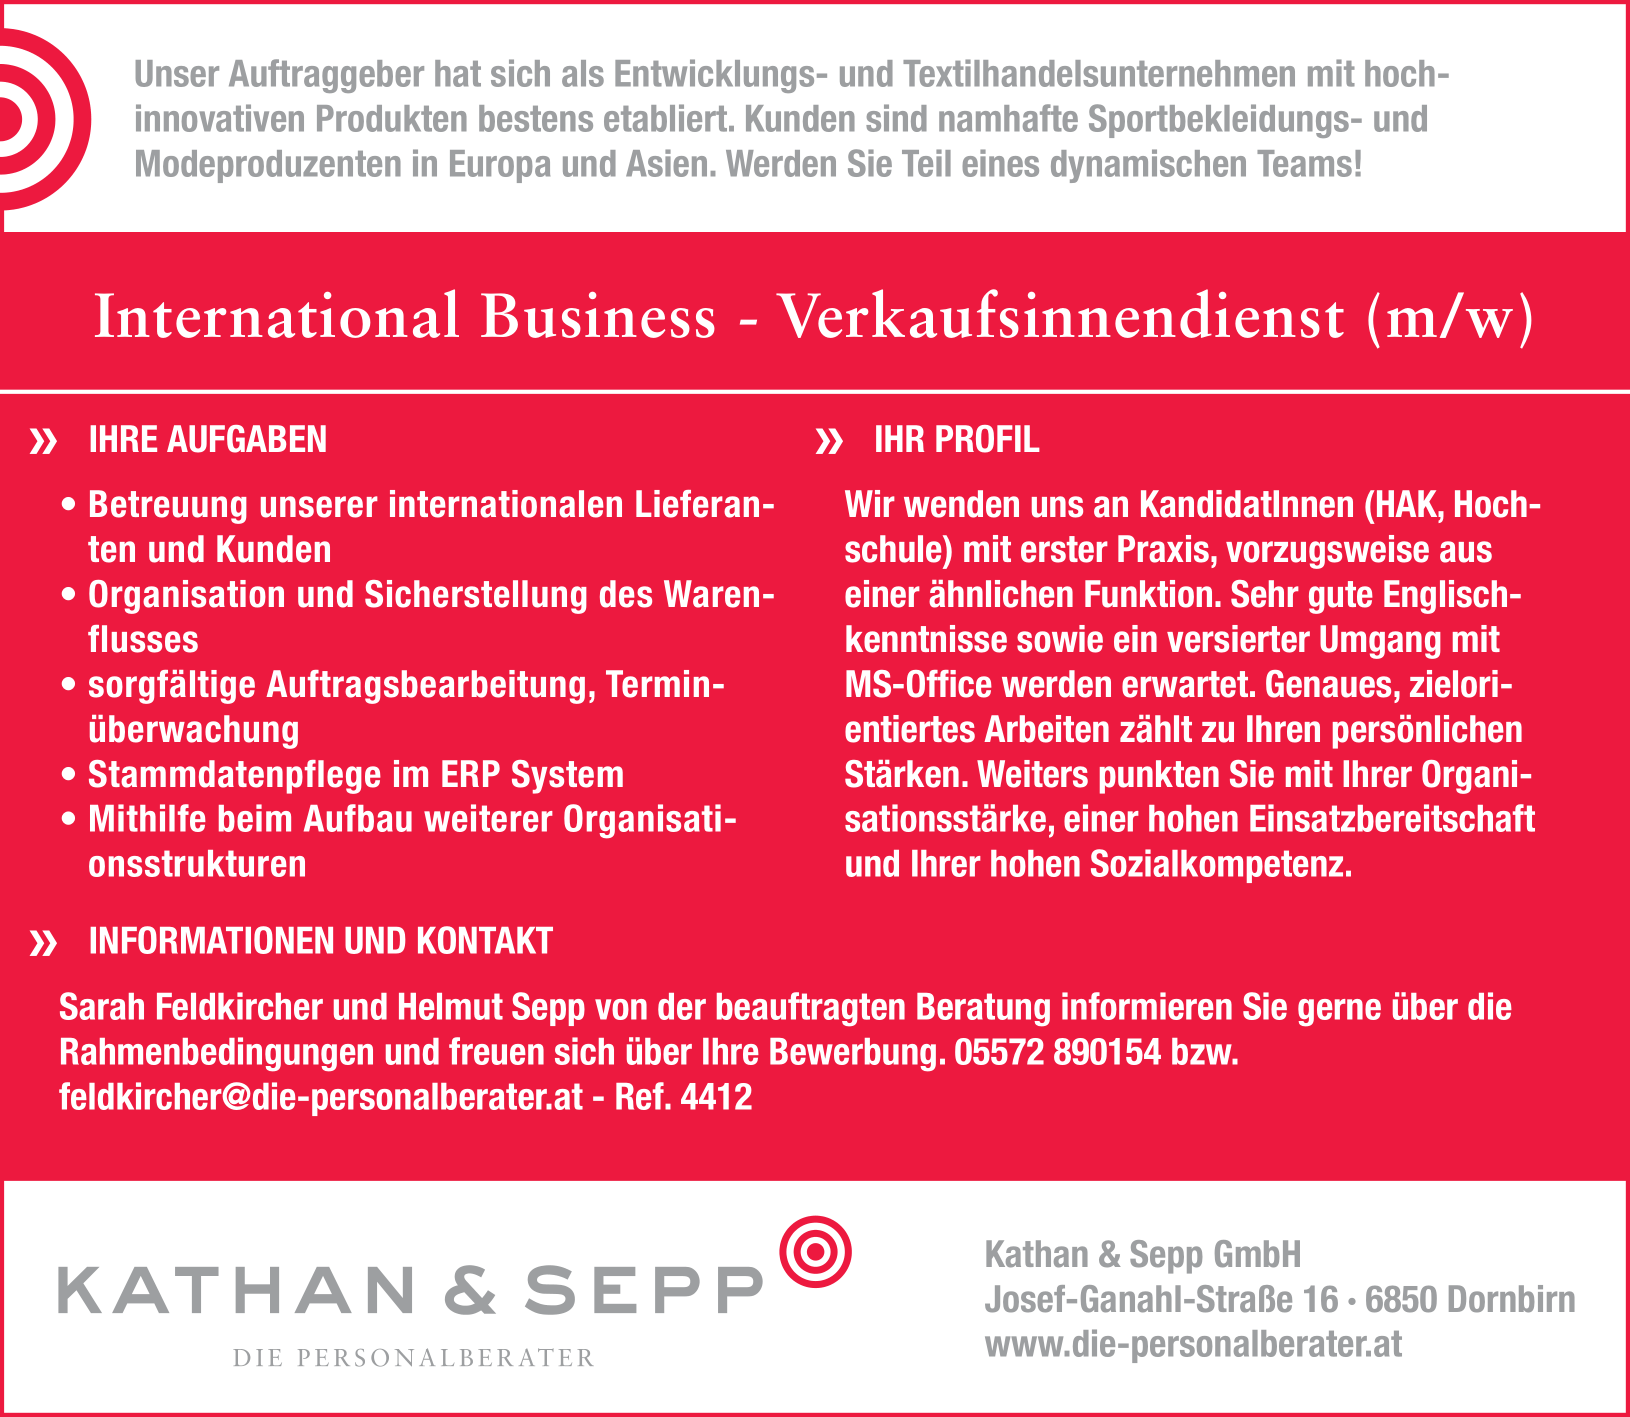 International Business - Verkaufsinnendienst